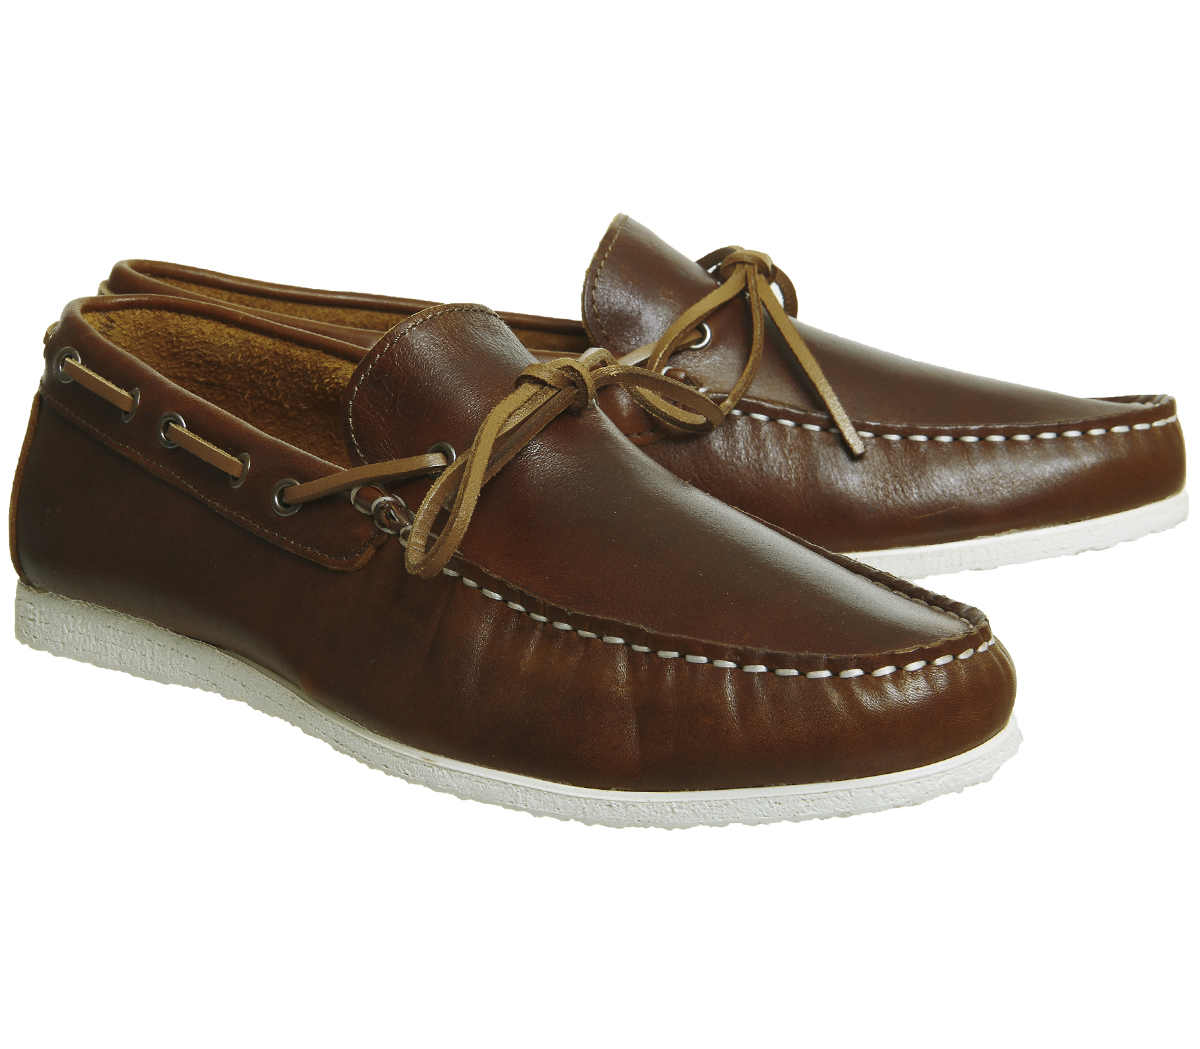 mens ask the missus draft boat shoe brown leather formal